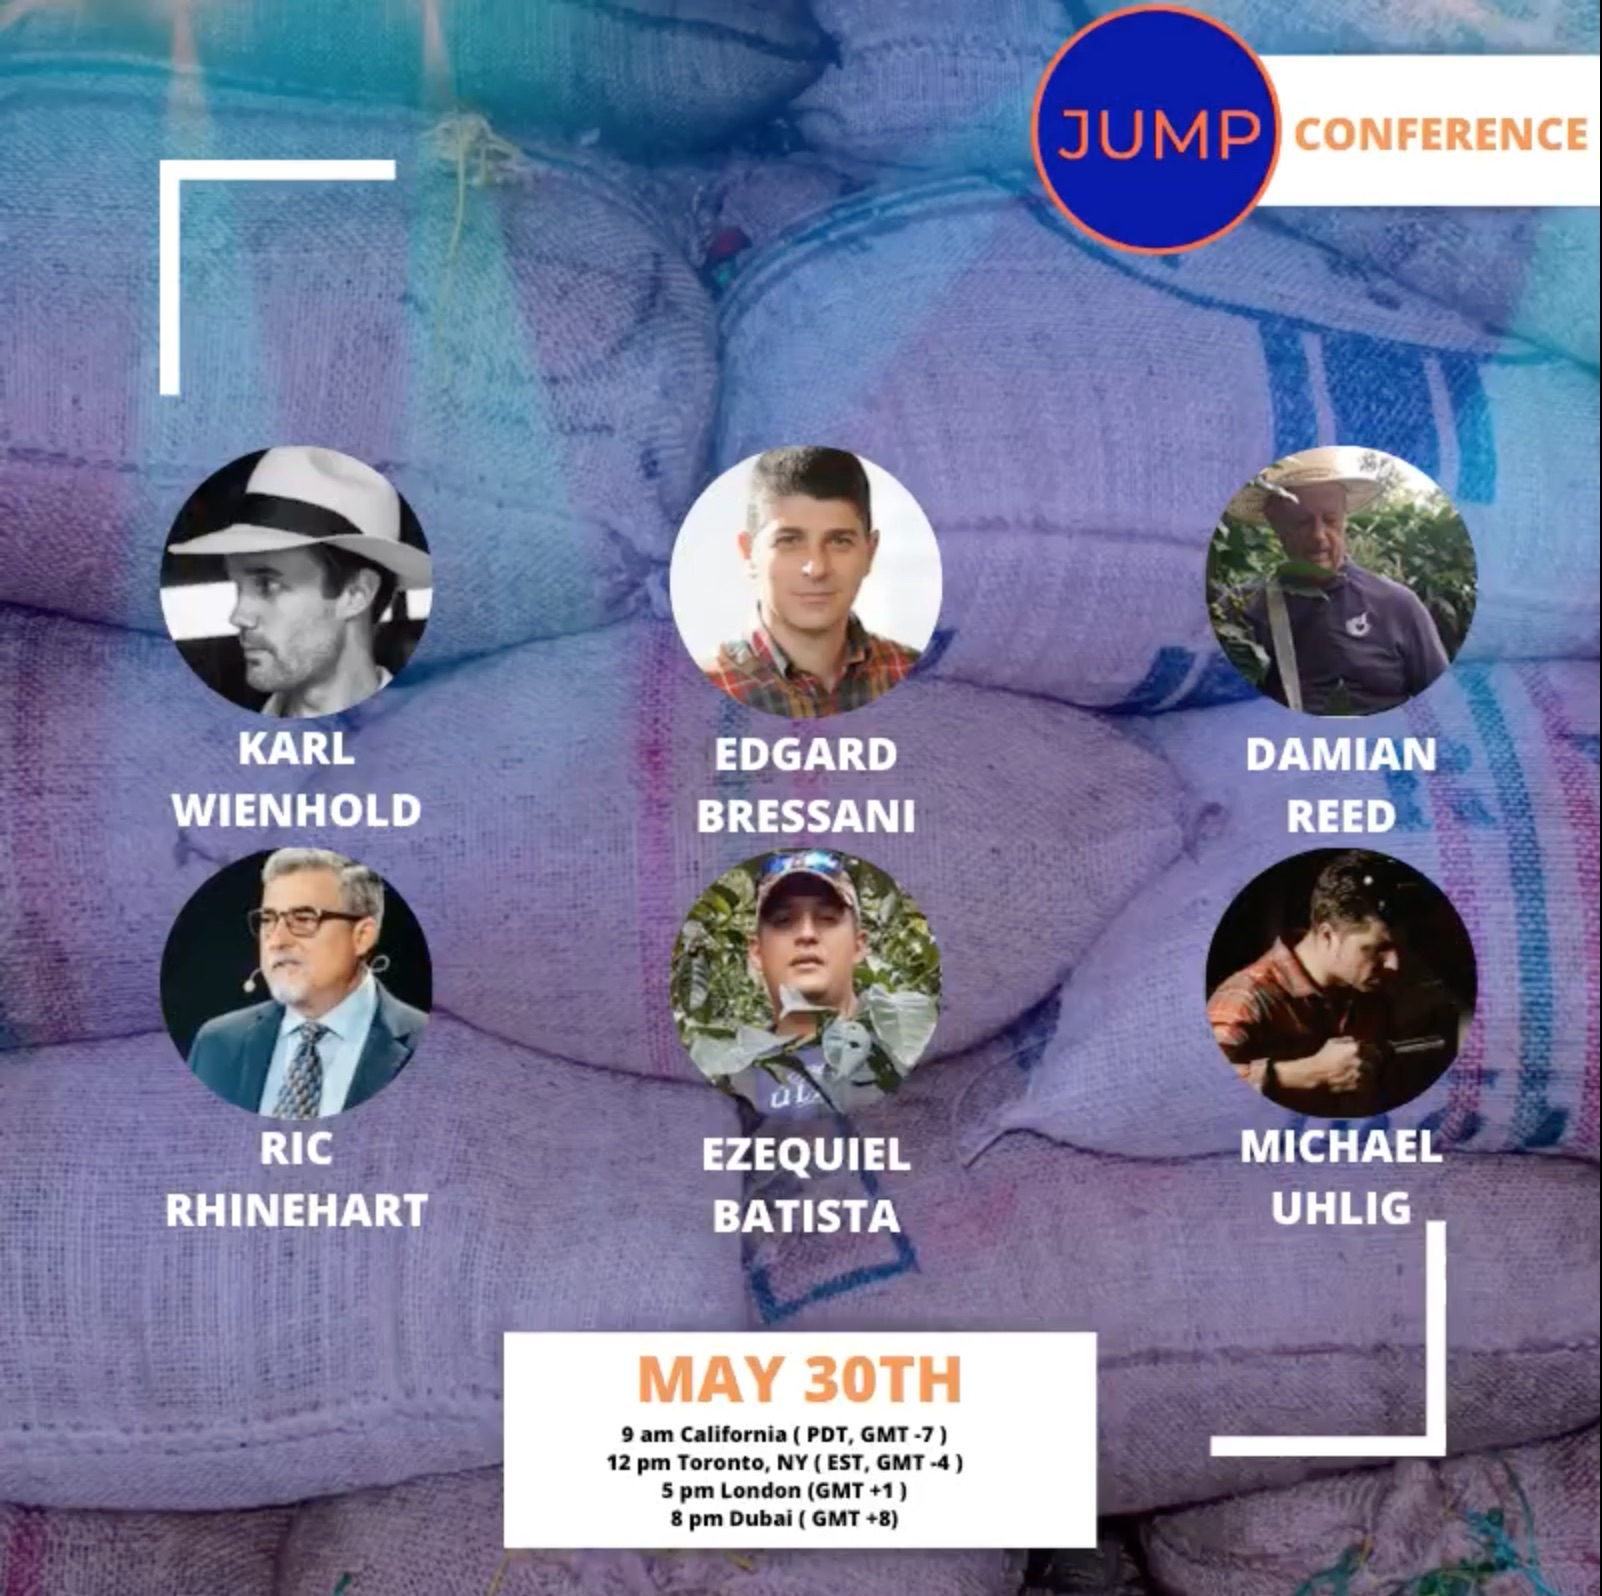 JUMP Conference Speakers A